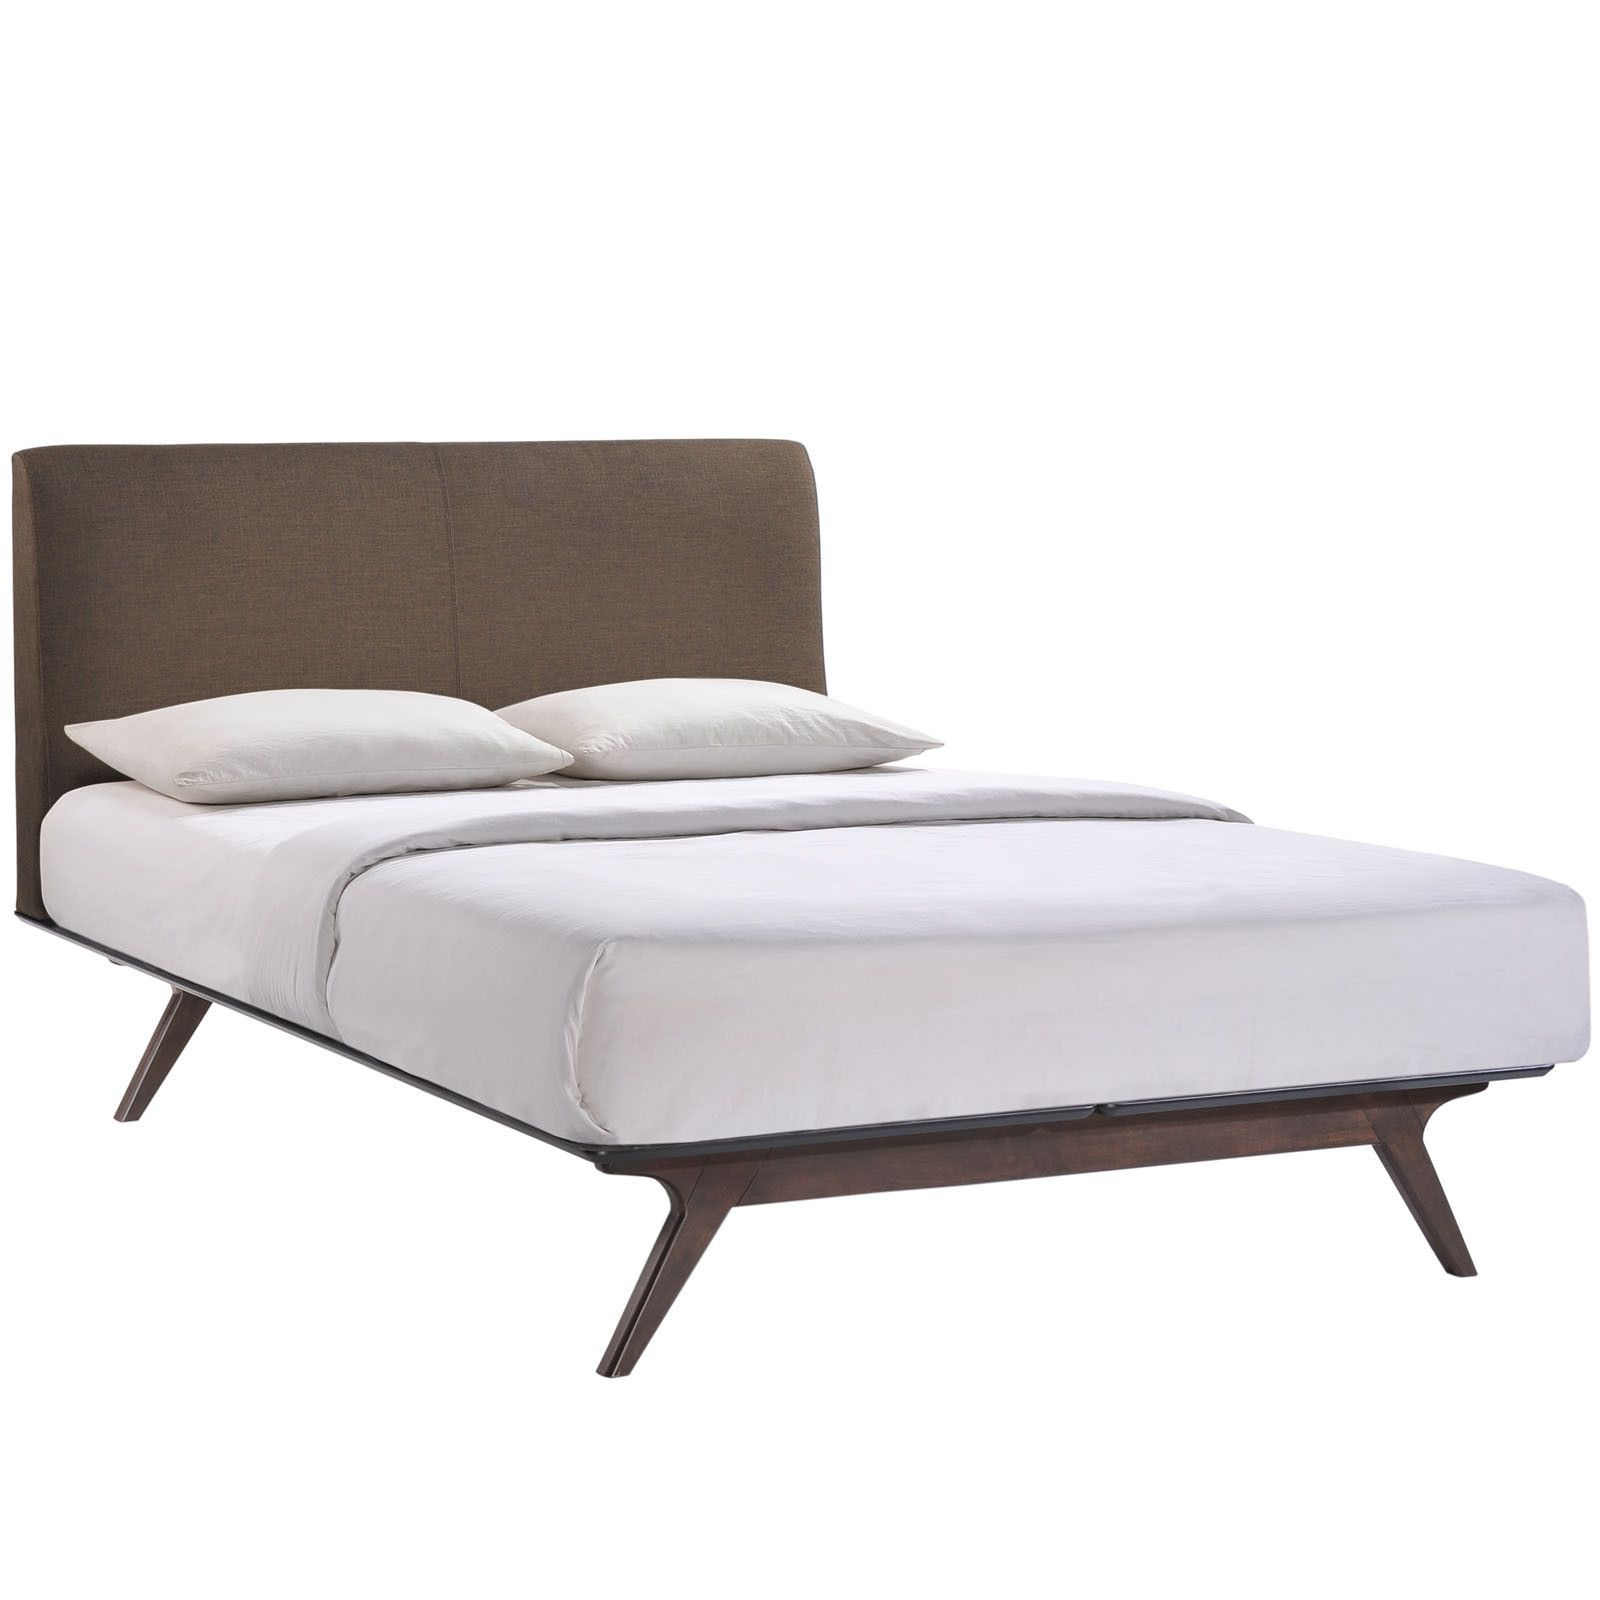 Modway Furniture Modern Tracy King Wood Bed MOD-5318